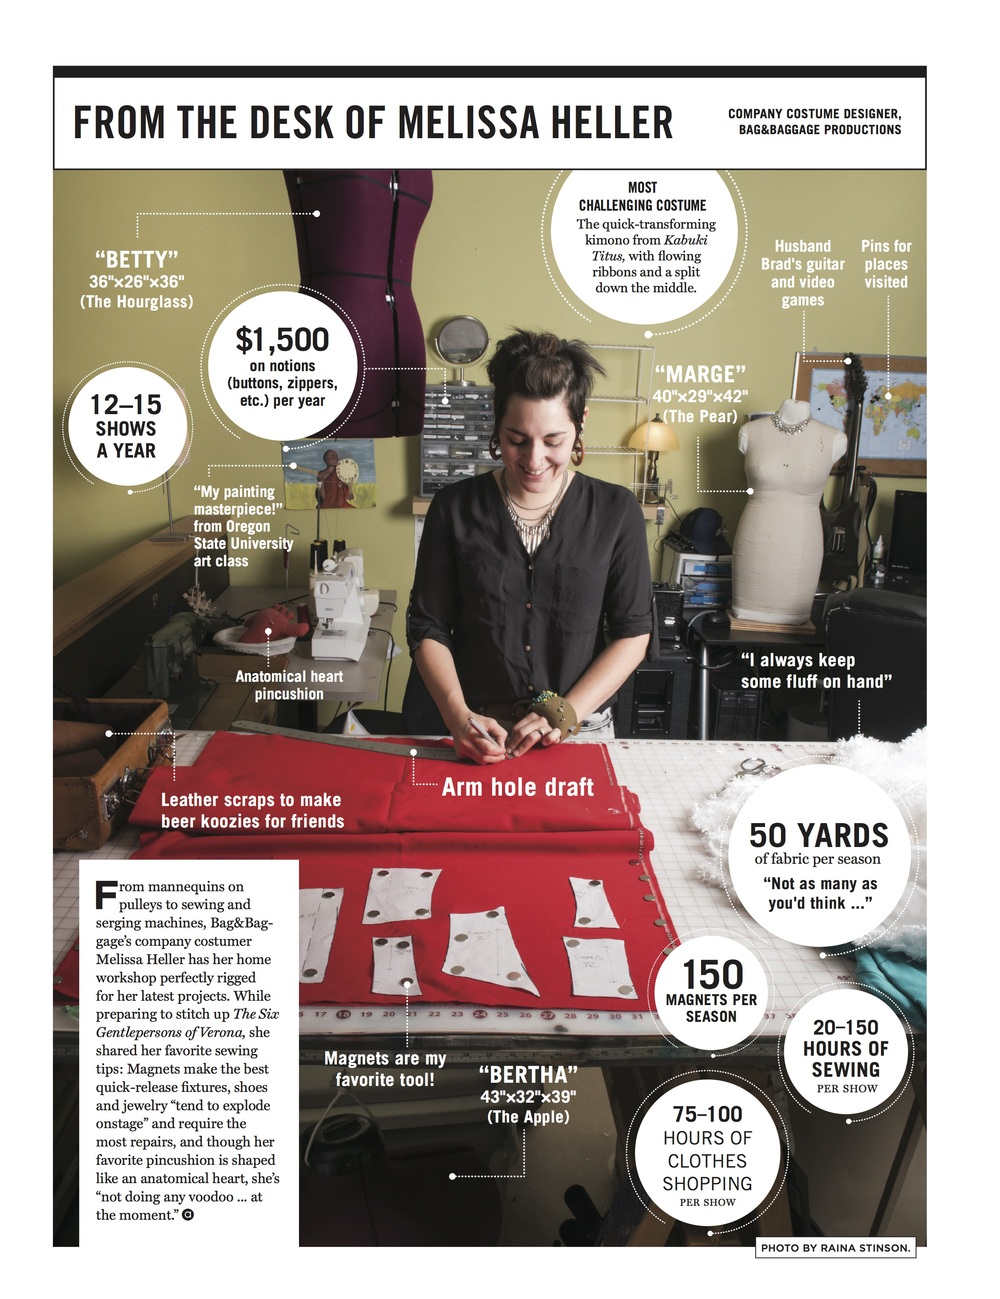 Melissa Heller, Costume Designer, Bag and Baggage, Artslandia March/April 2015